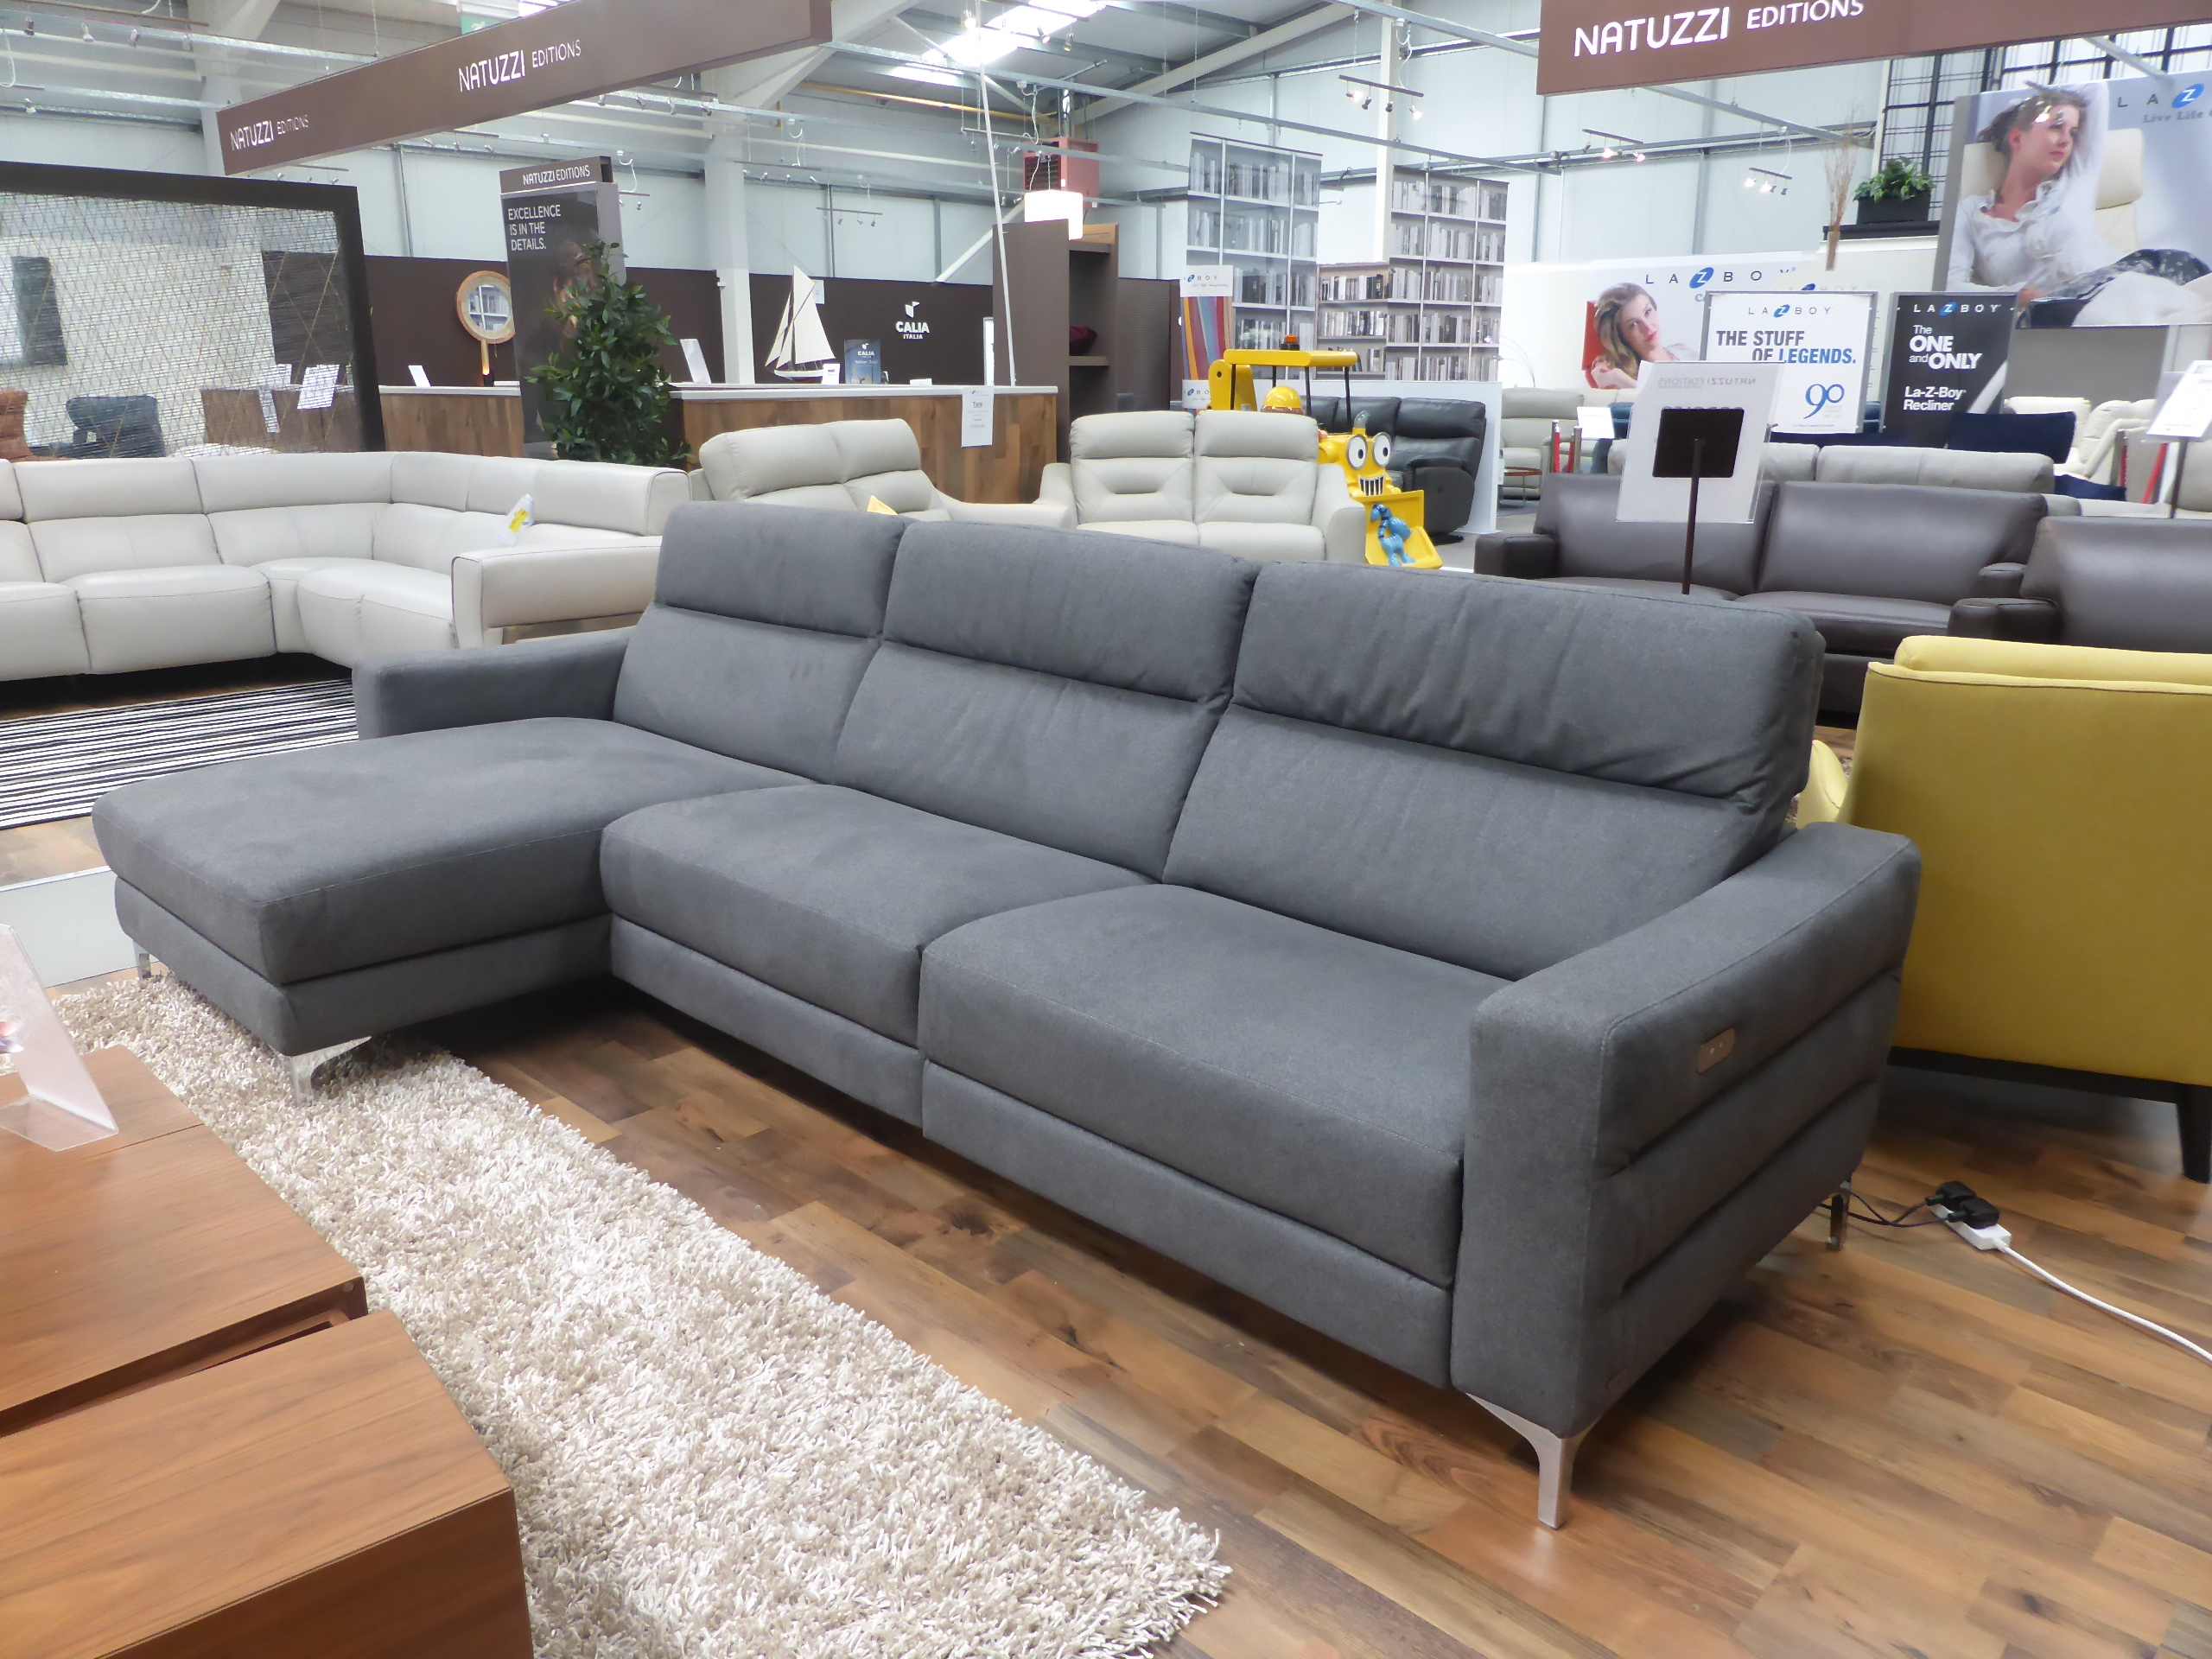 marco cream chaise sofa by factory outlet taupe leather bed natuzzi clearance stock brand new latest model gaspare with power headrest and recliner on each end beautiful italian stone chrome legs